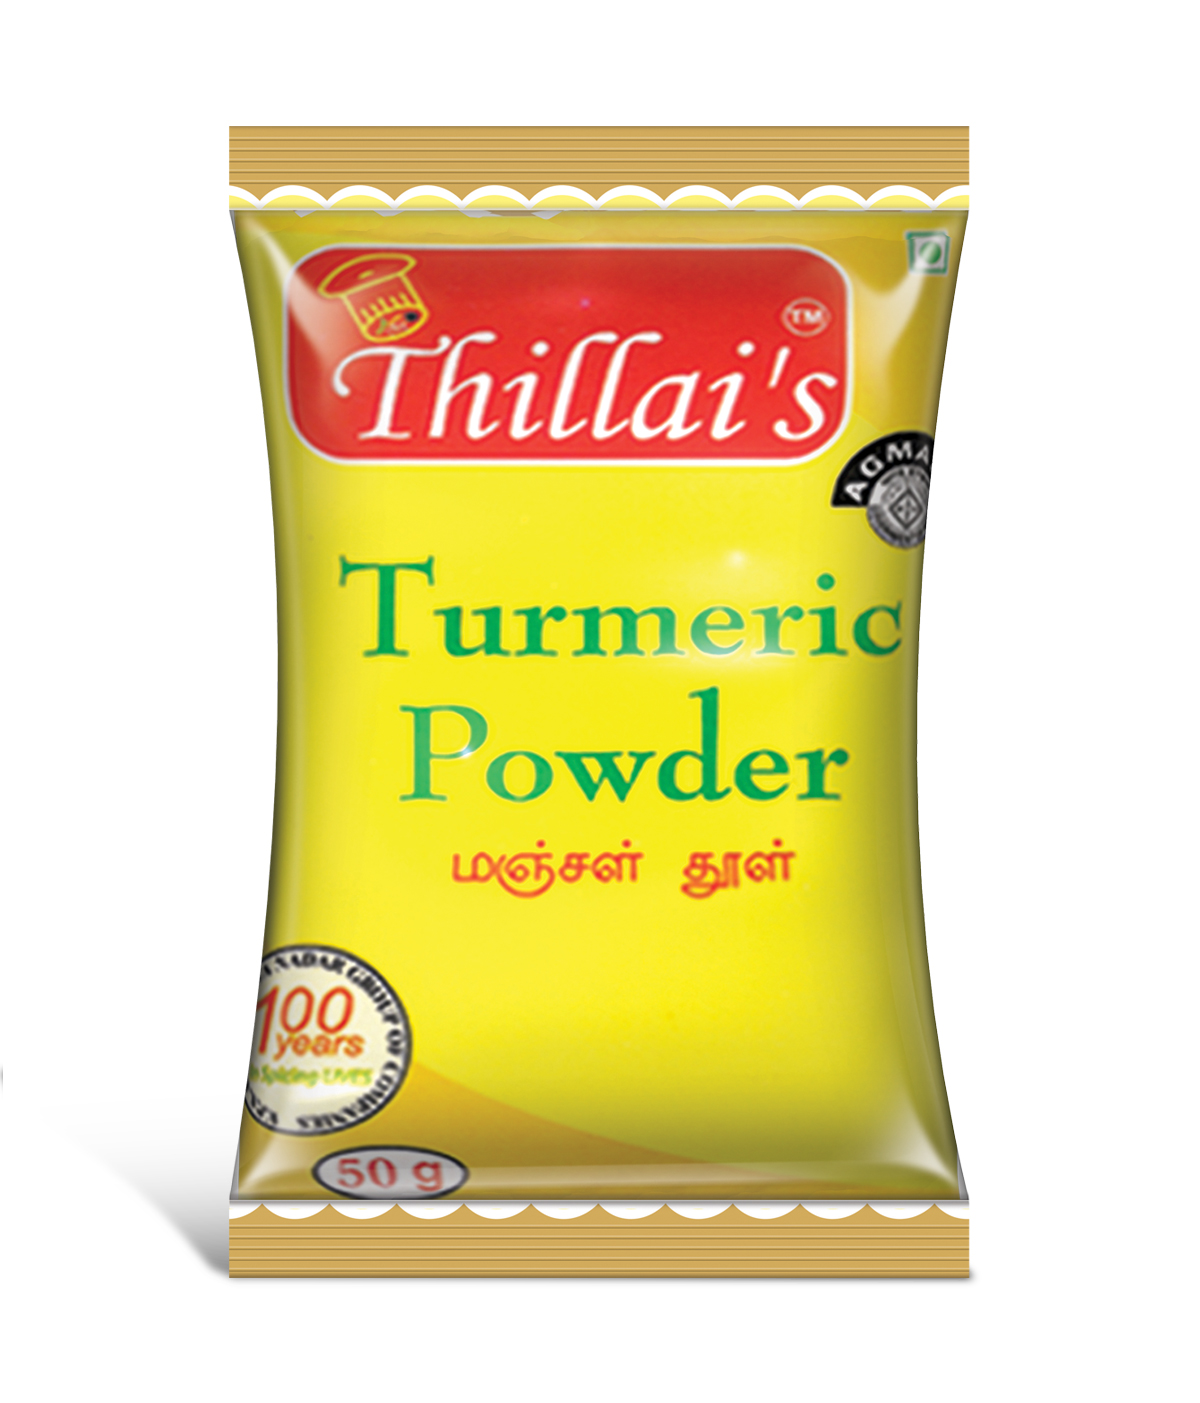 Thillais Turmeric Haldi Powder-50g Ayurvedic Natural Anti-inflammotary with high Curcumin